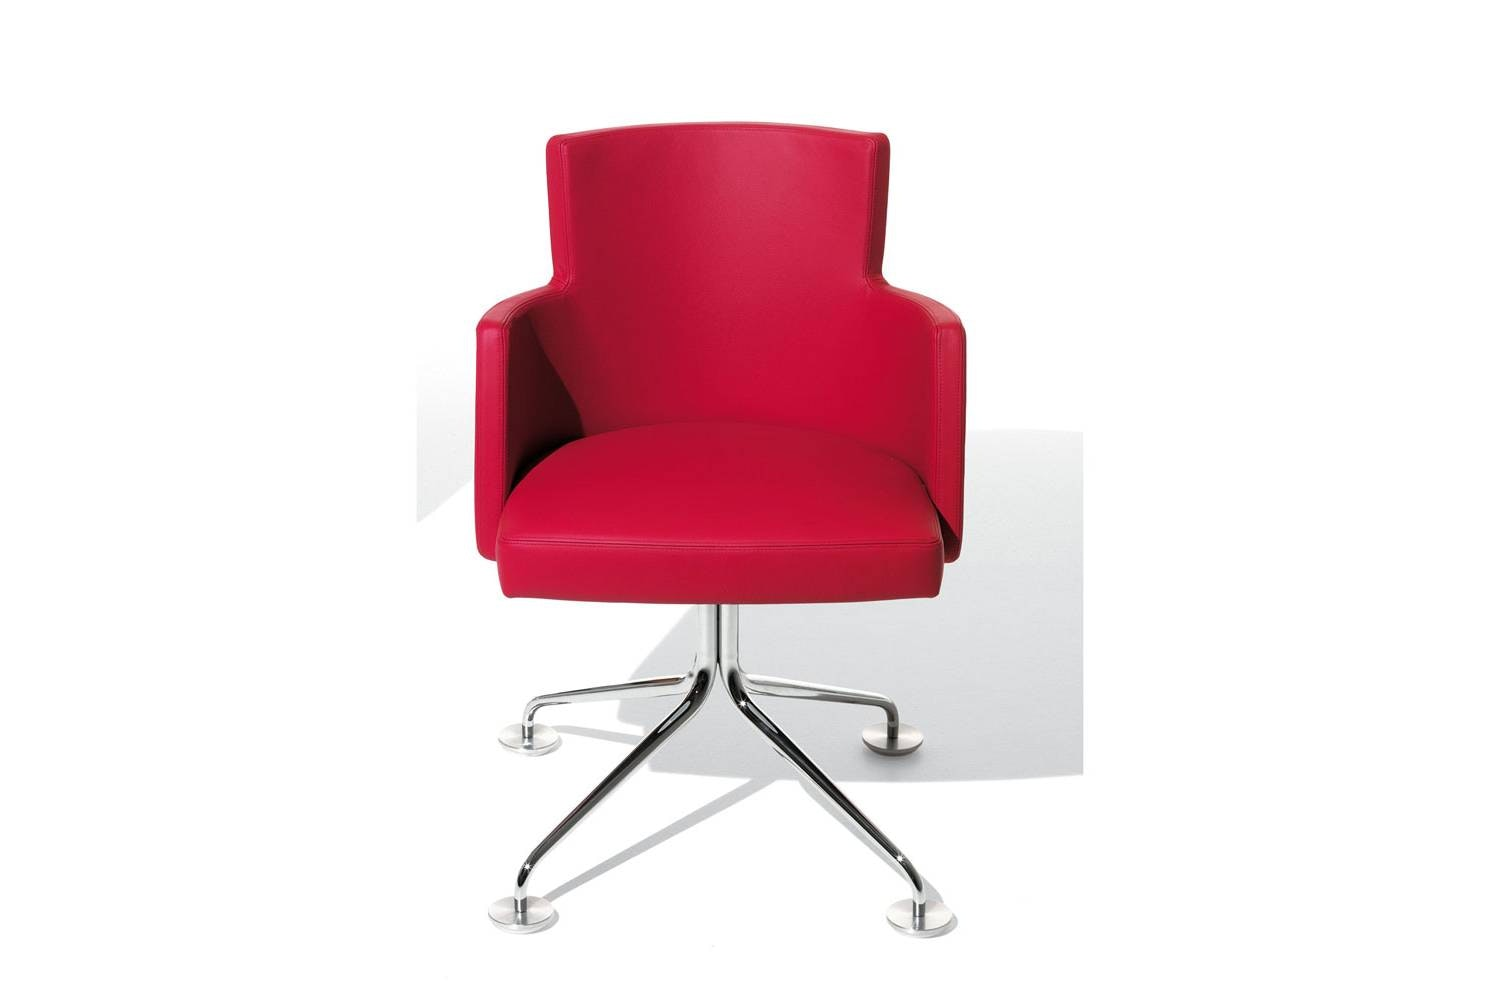 Turne Armchair by Enrico Franzolini for Accademia